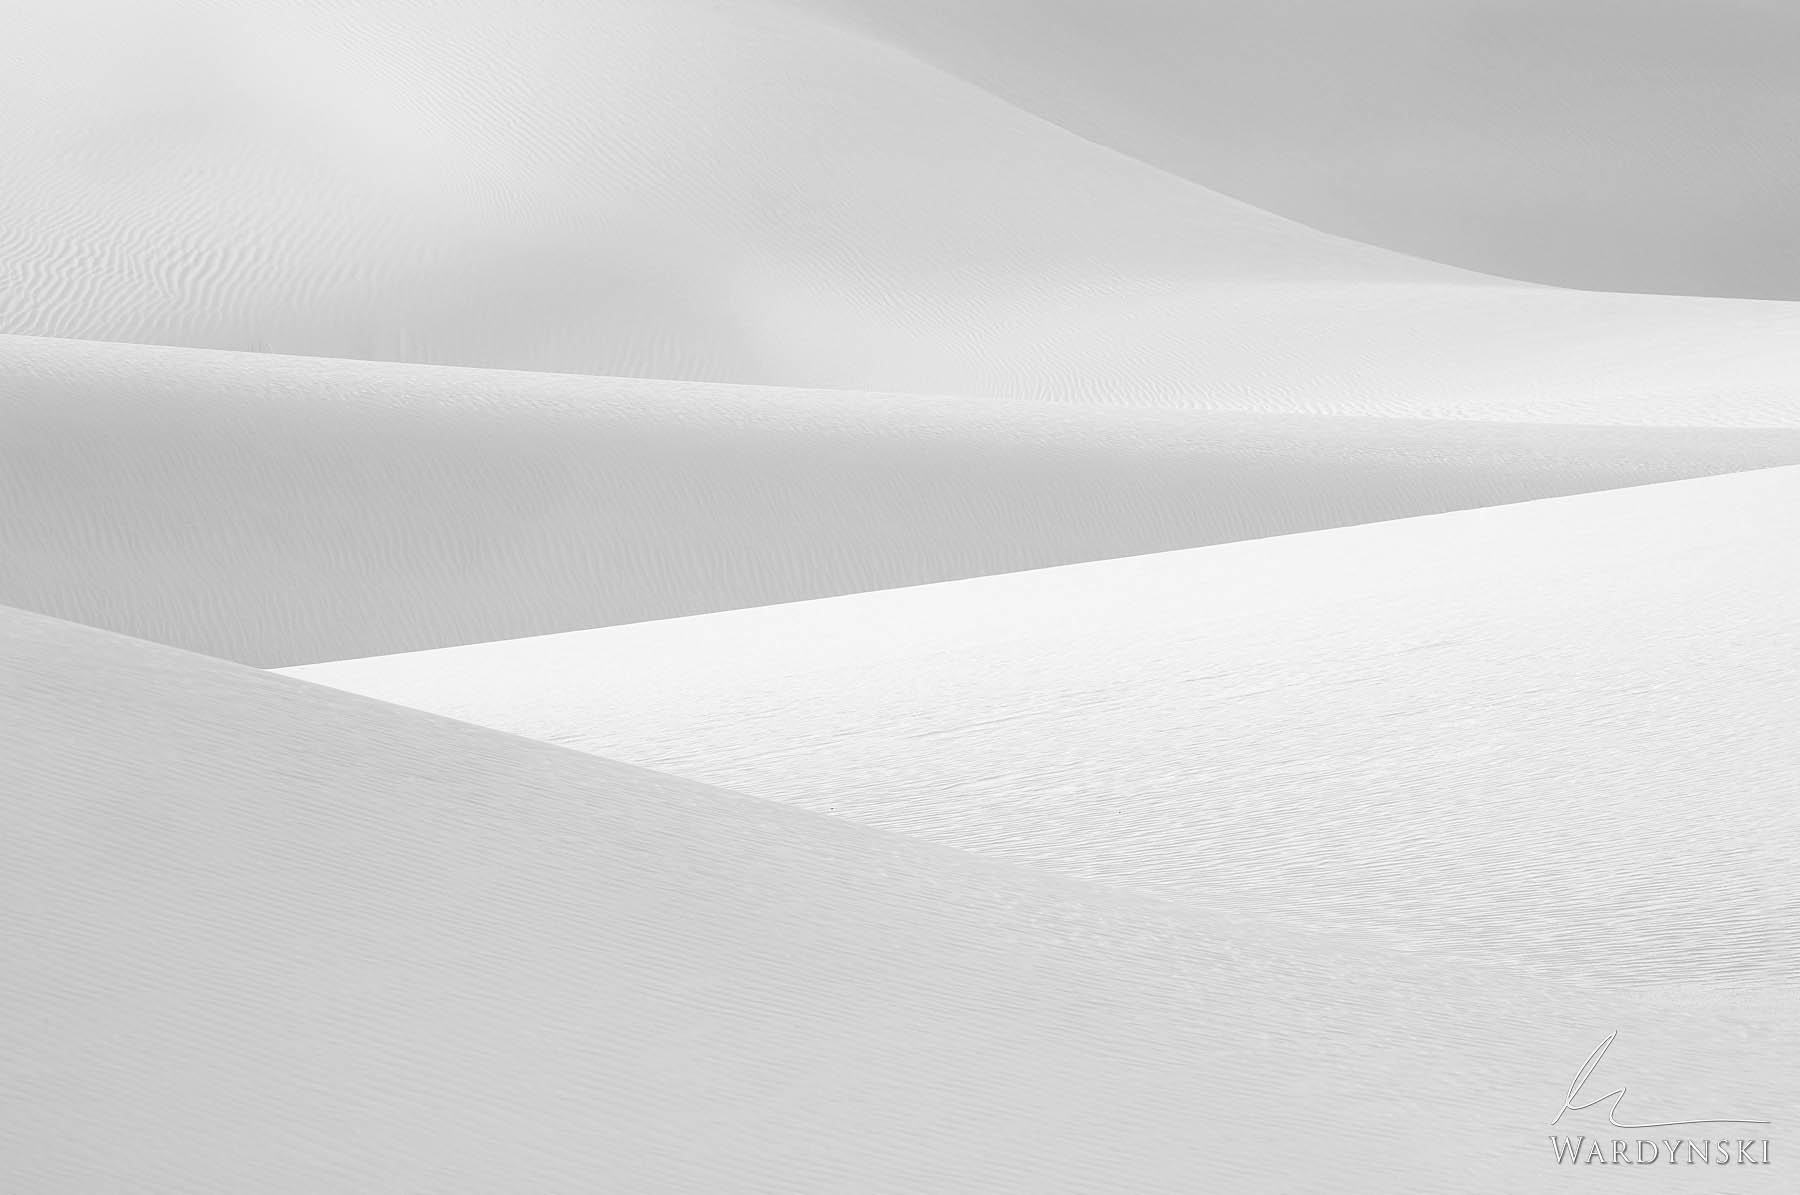 Fine Art Print | Limited Edition of 100 Rolling gypsum sand dunes create pleasing abstract textures in White Sands National Park...